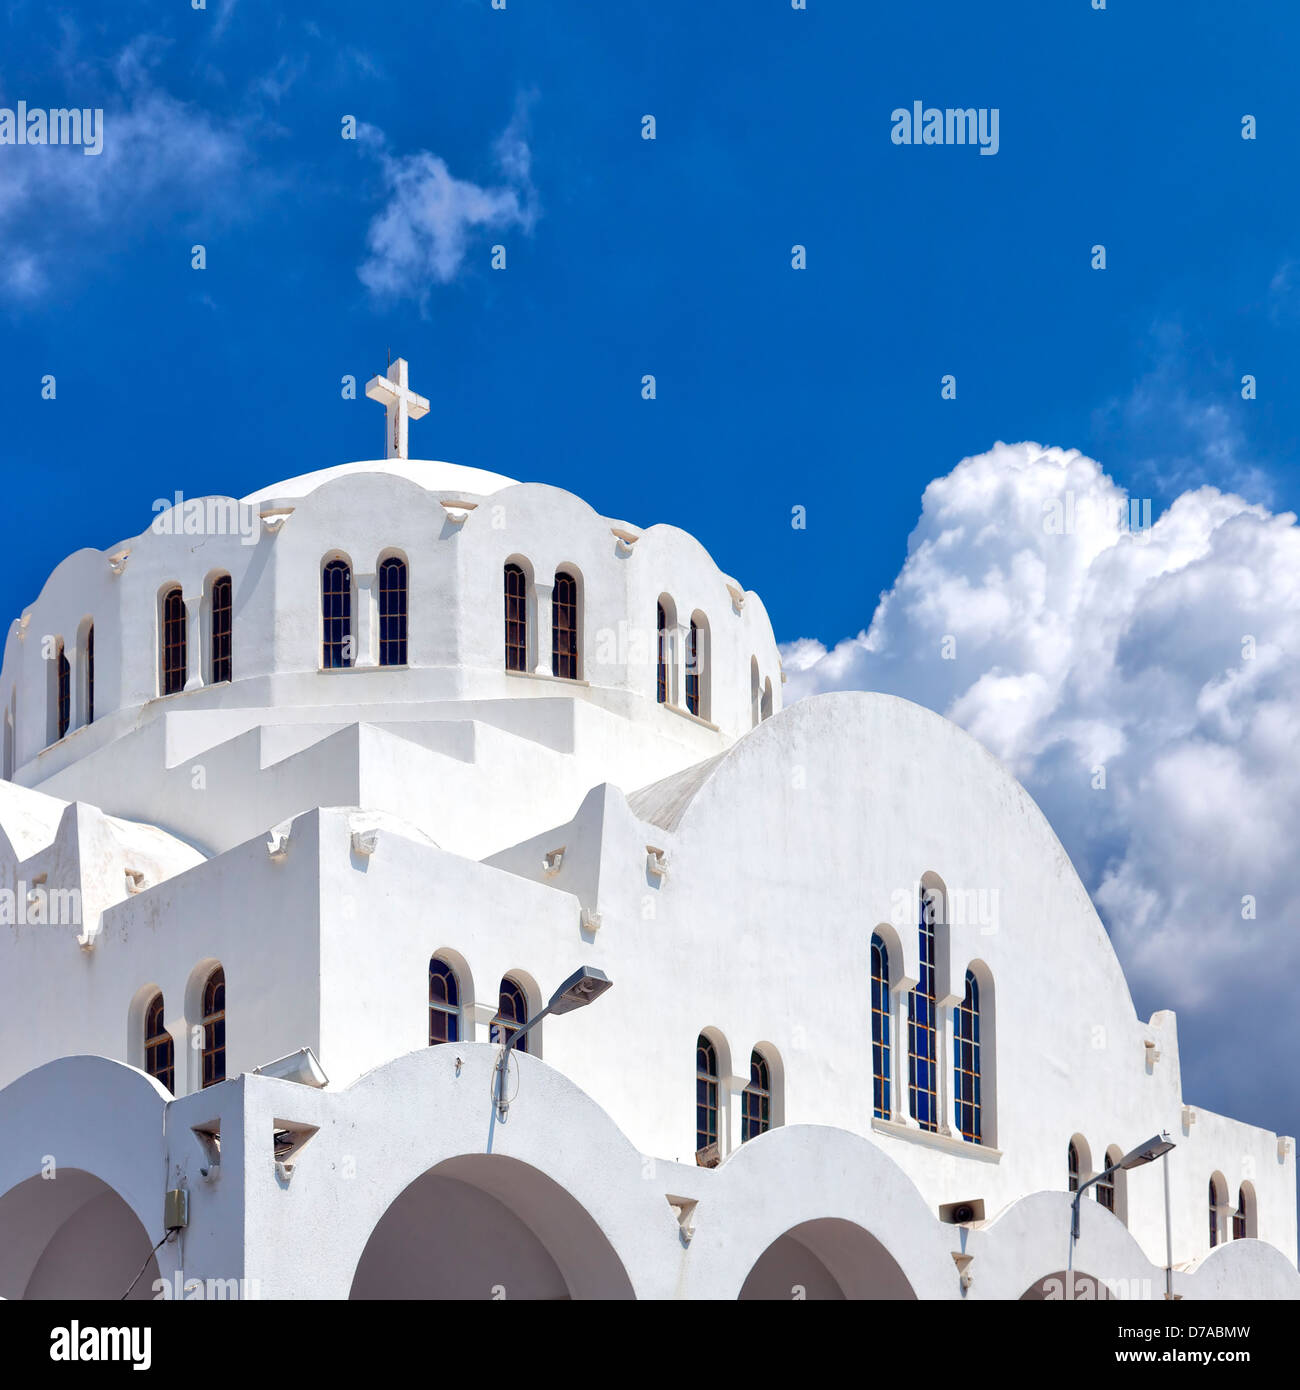 The Orthodox Metropolitan cathedral situated in the capital town of fira on the greek island of santorini. - Stock Image